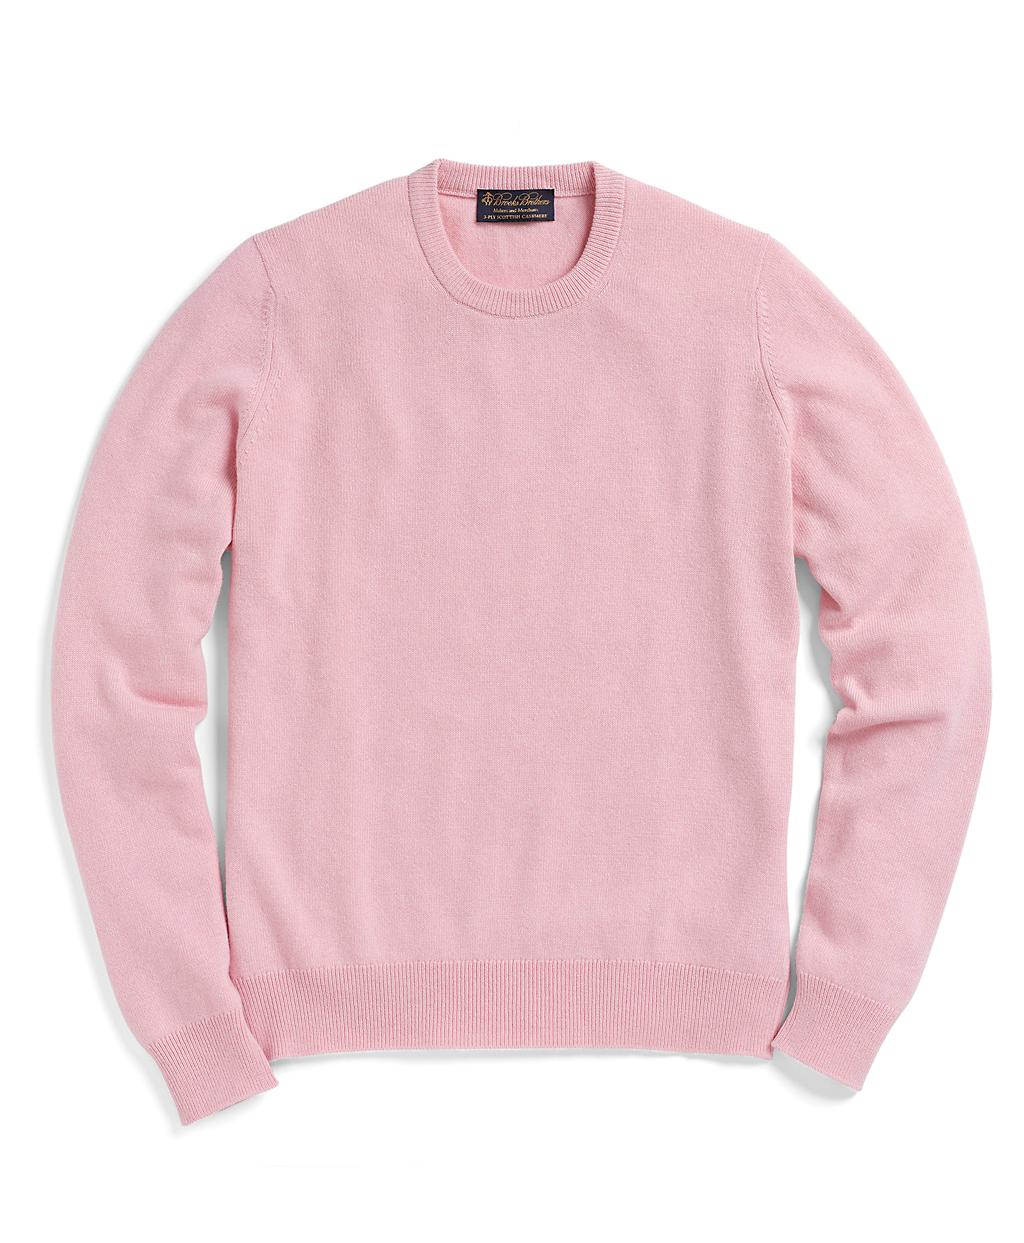 Shop Men's Sweaters at distrib-wjmx2fn9.ga Browse men's crew neck sweaters, cashmere sweaters, cardigans & more. Find the perfect men's sweater for any occasion here.